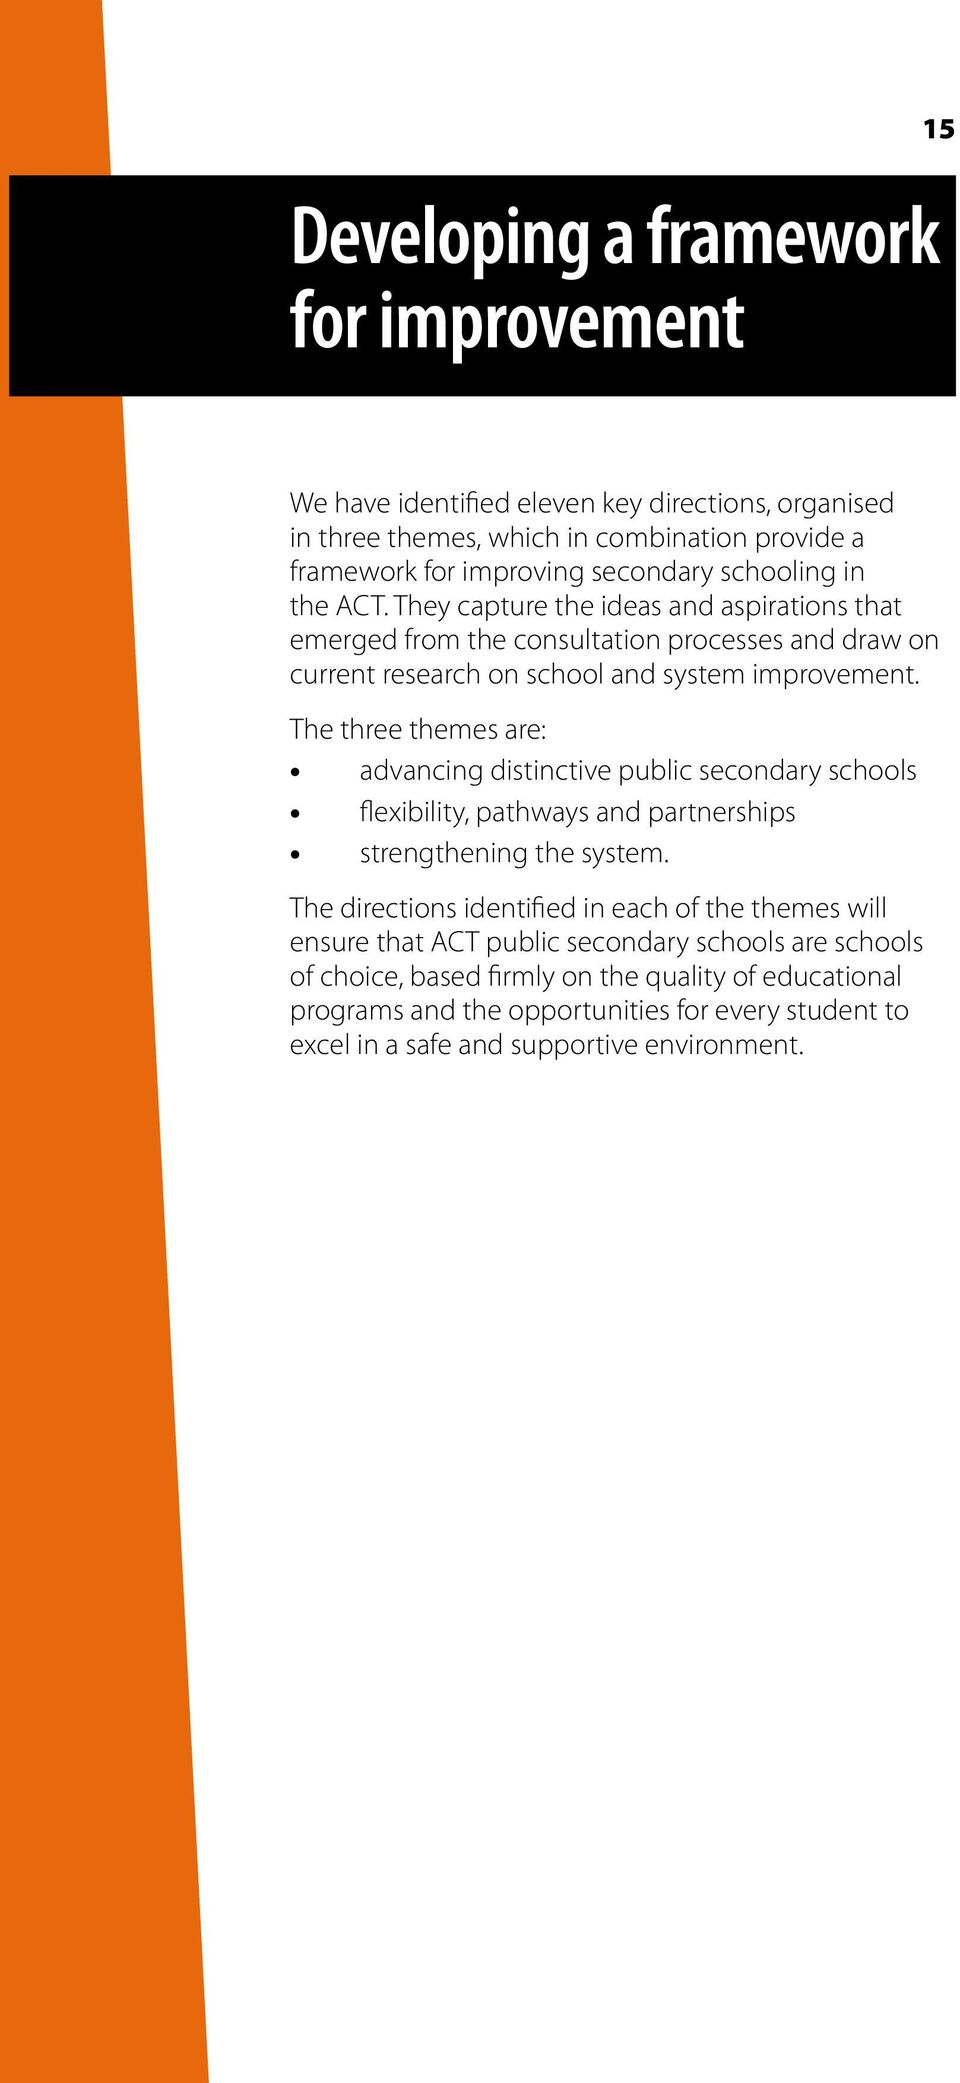 The three themes are: advancing distinctive public secondary schools flexibility, pathways and partnerships strengthening the system.